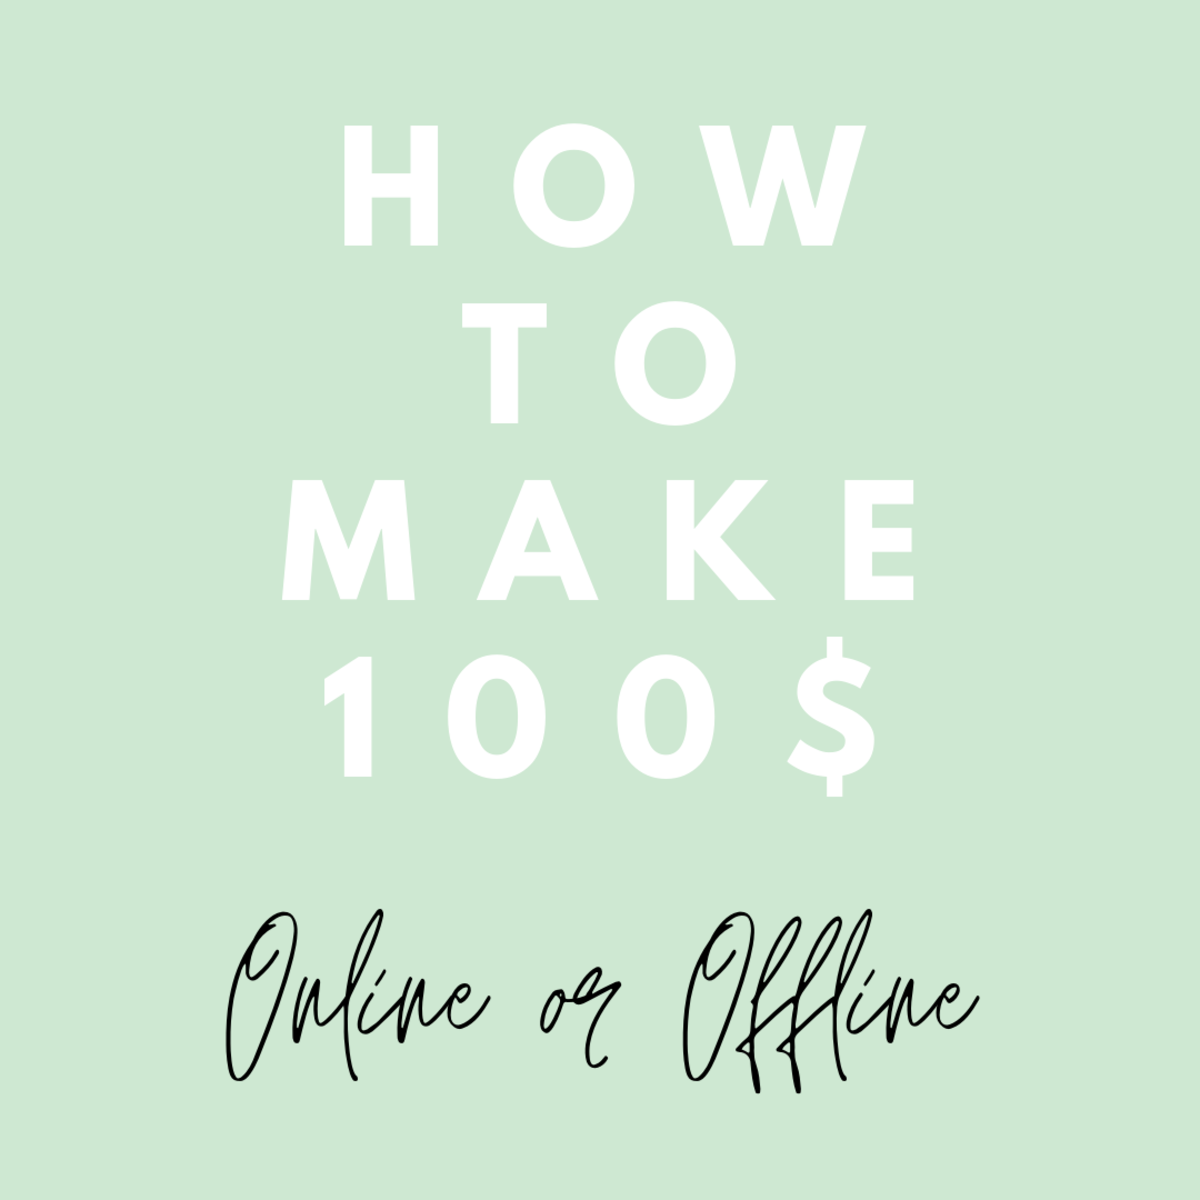 10 Great Ways to Make $100 in a Day Online or Offline